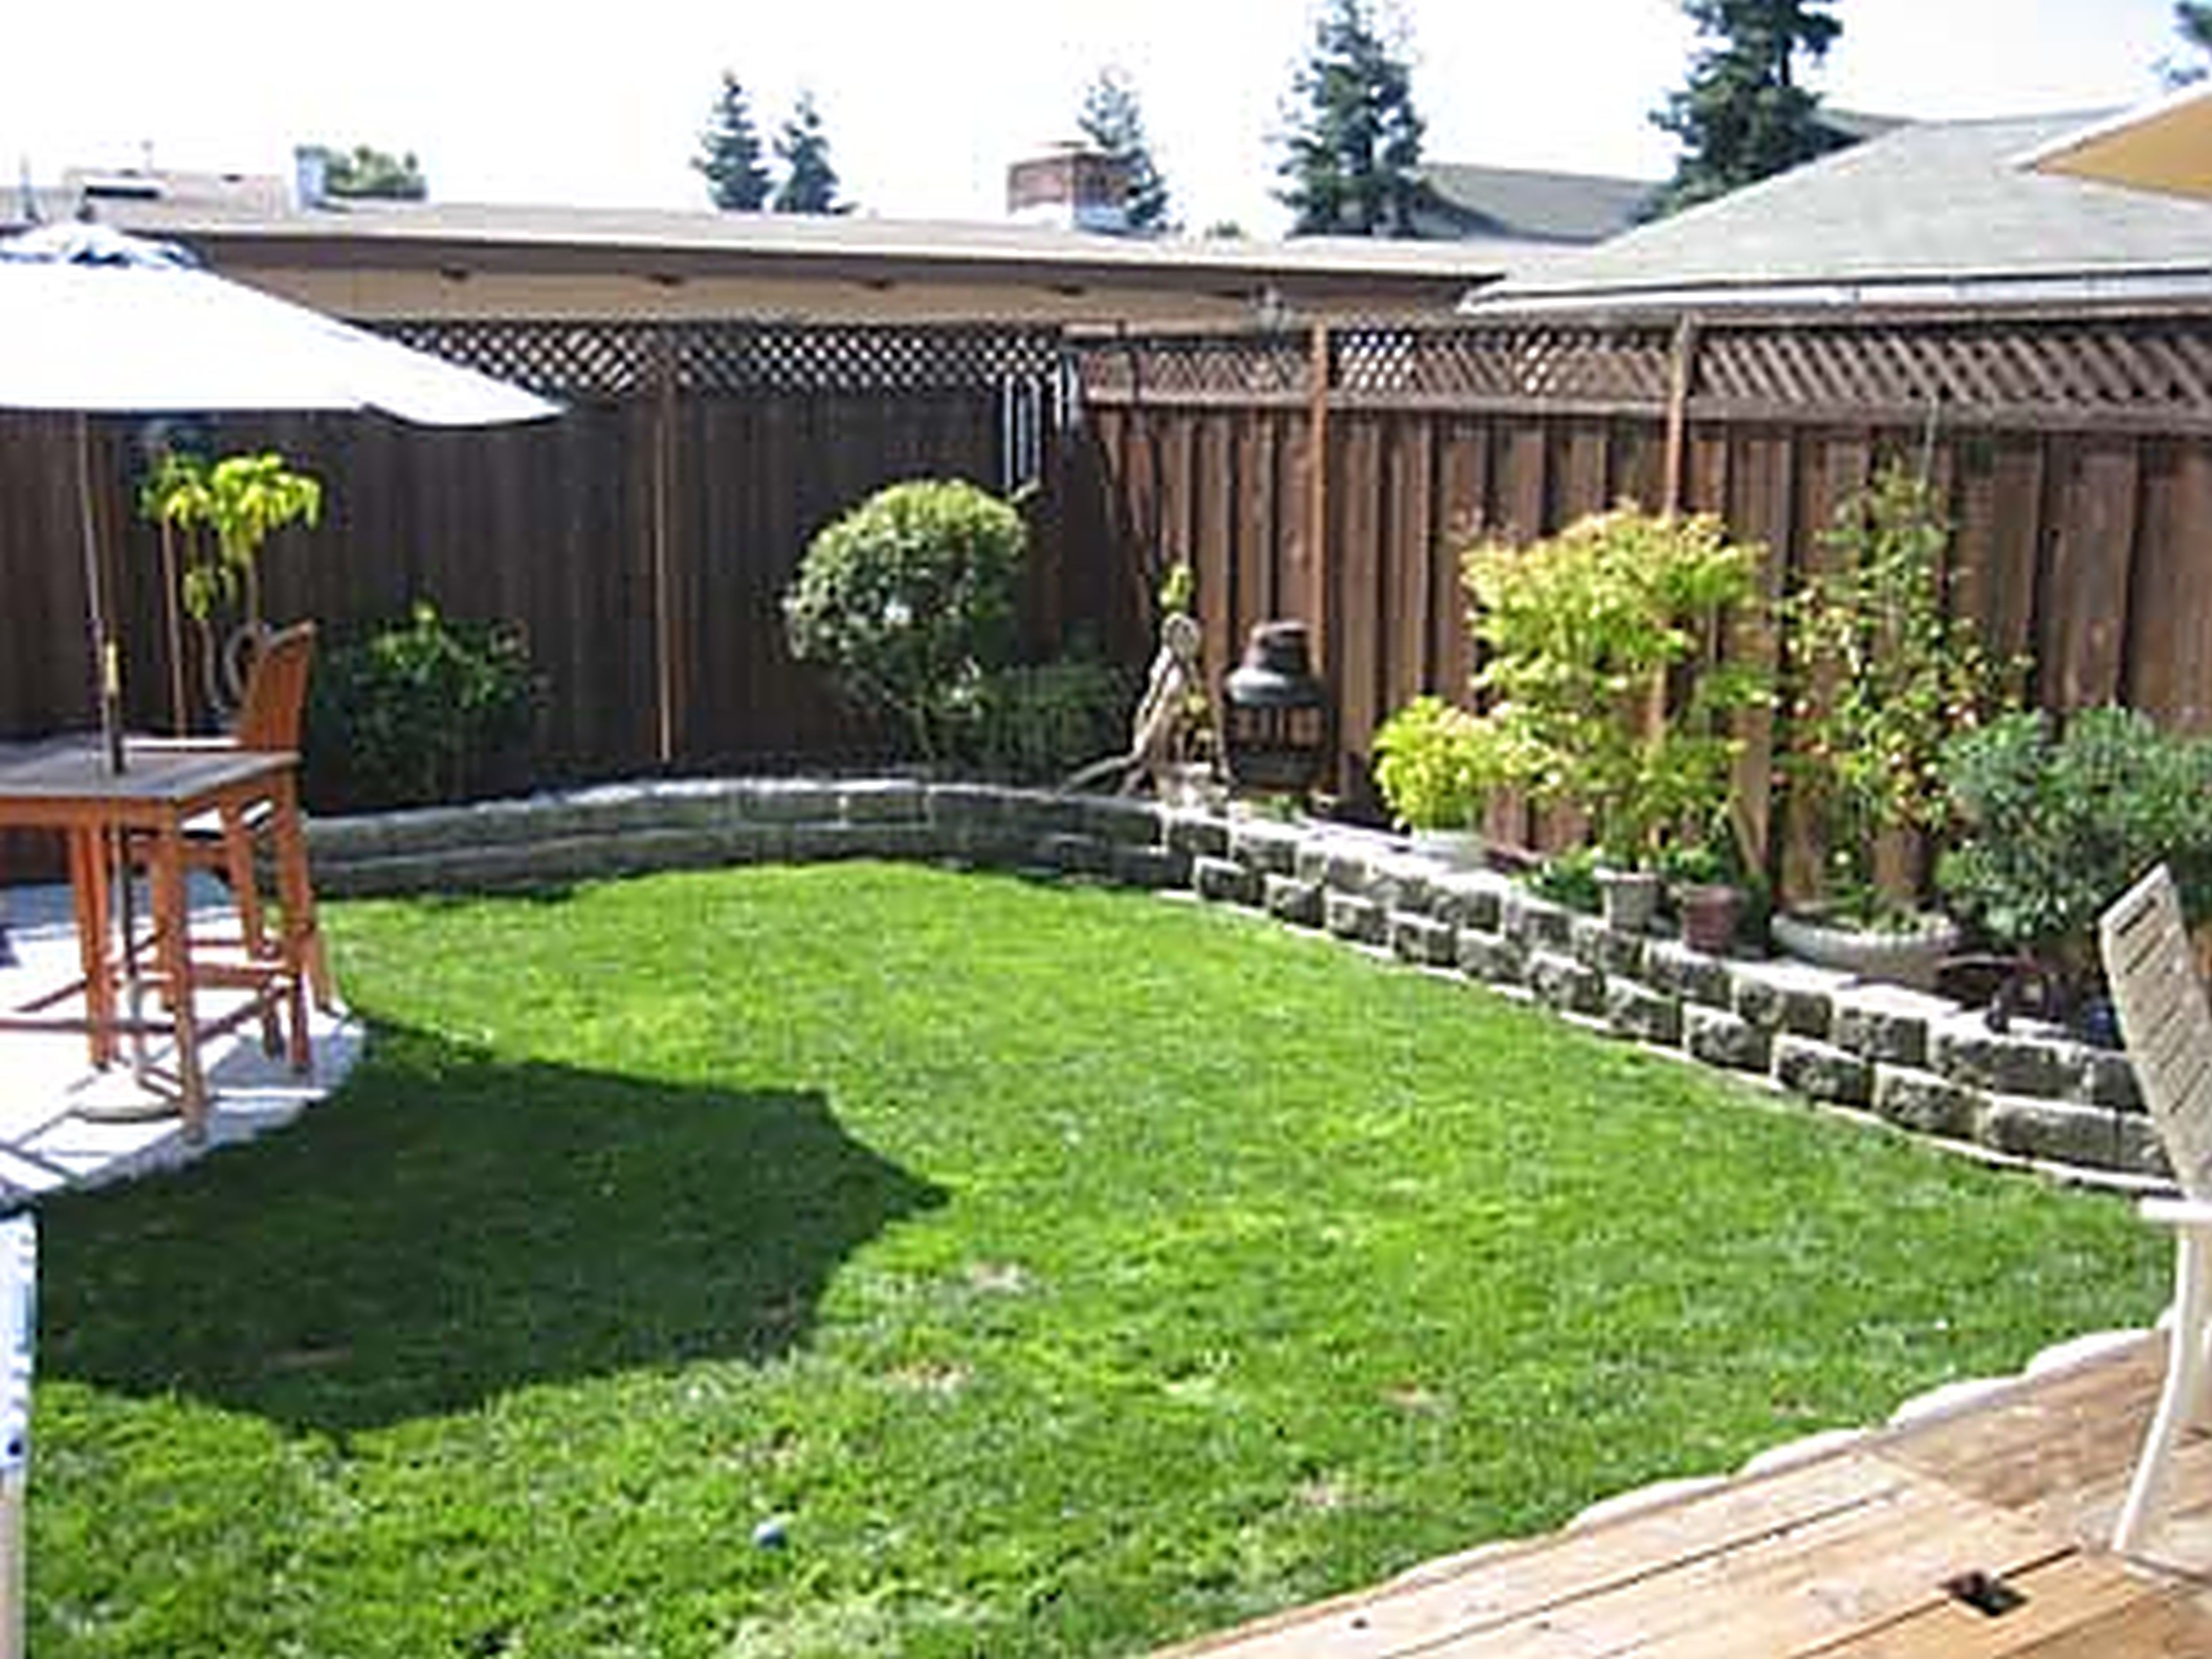 Delicieux Simple Backyard Landscaping Ideas   Http://backyardidea.net/backyard  Landscaping/simple Backyard Landscaping Ideas/ | Gardening U0026 Lawncare |  Pinterest ...